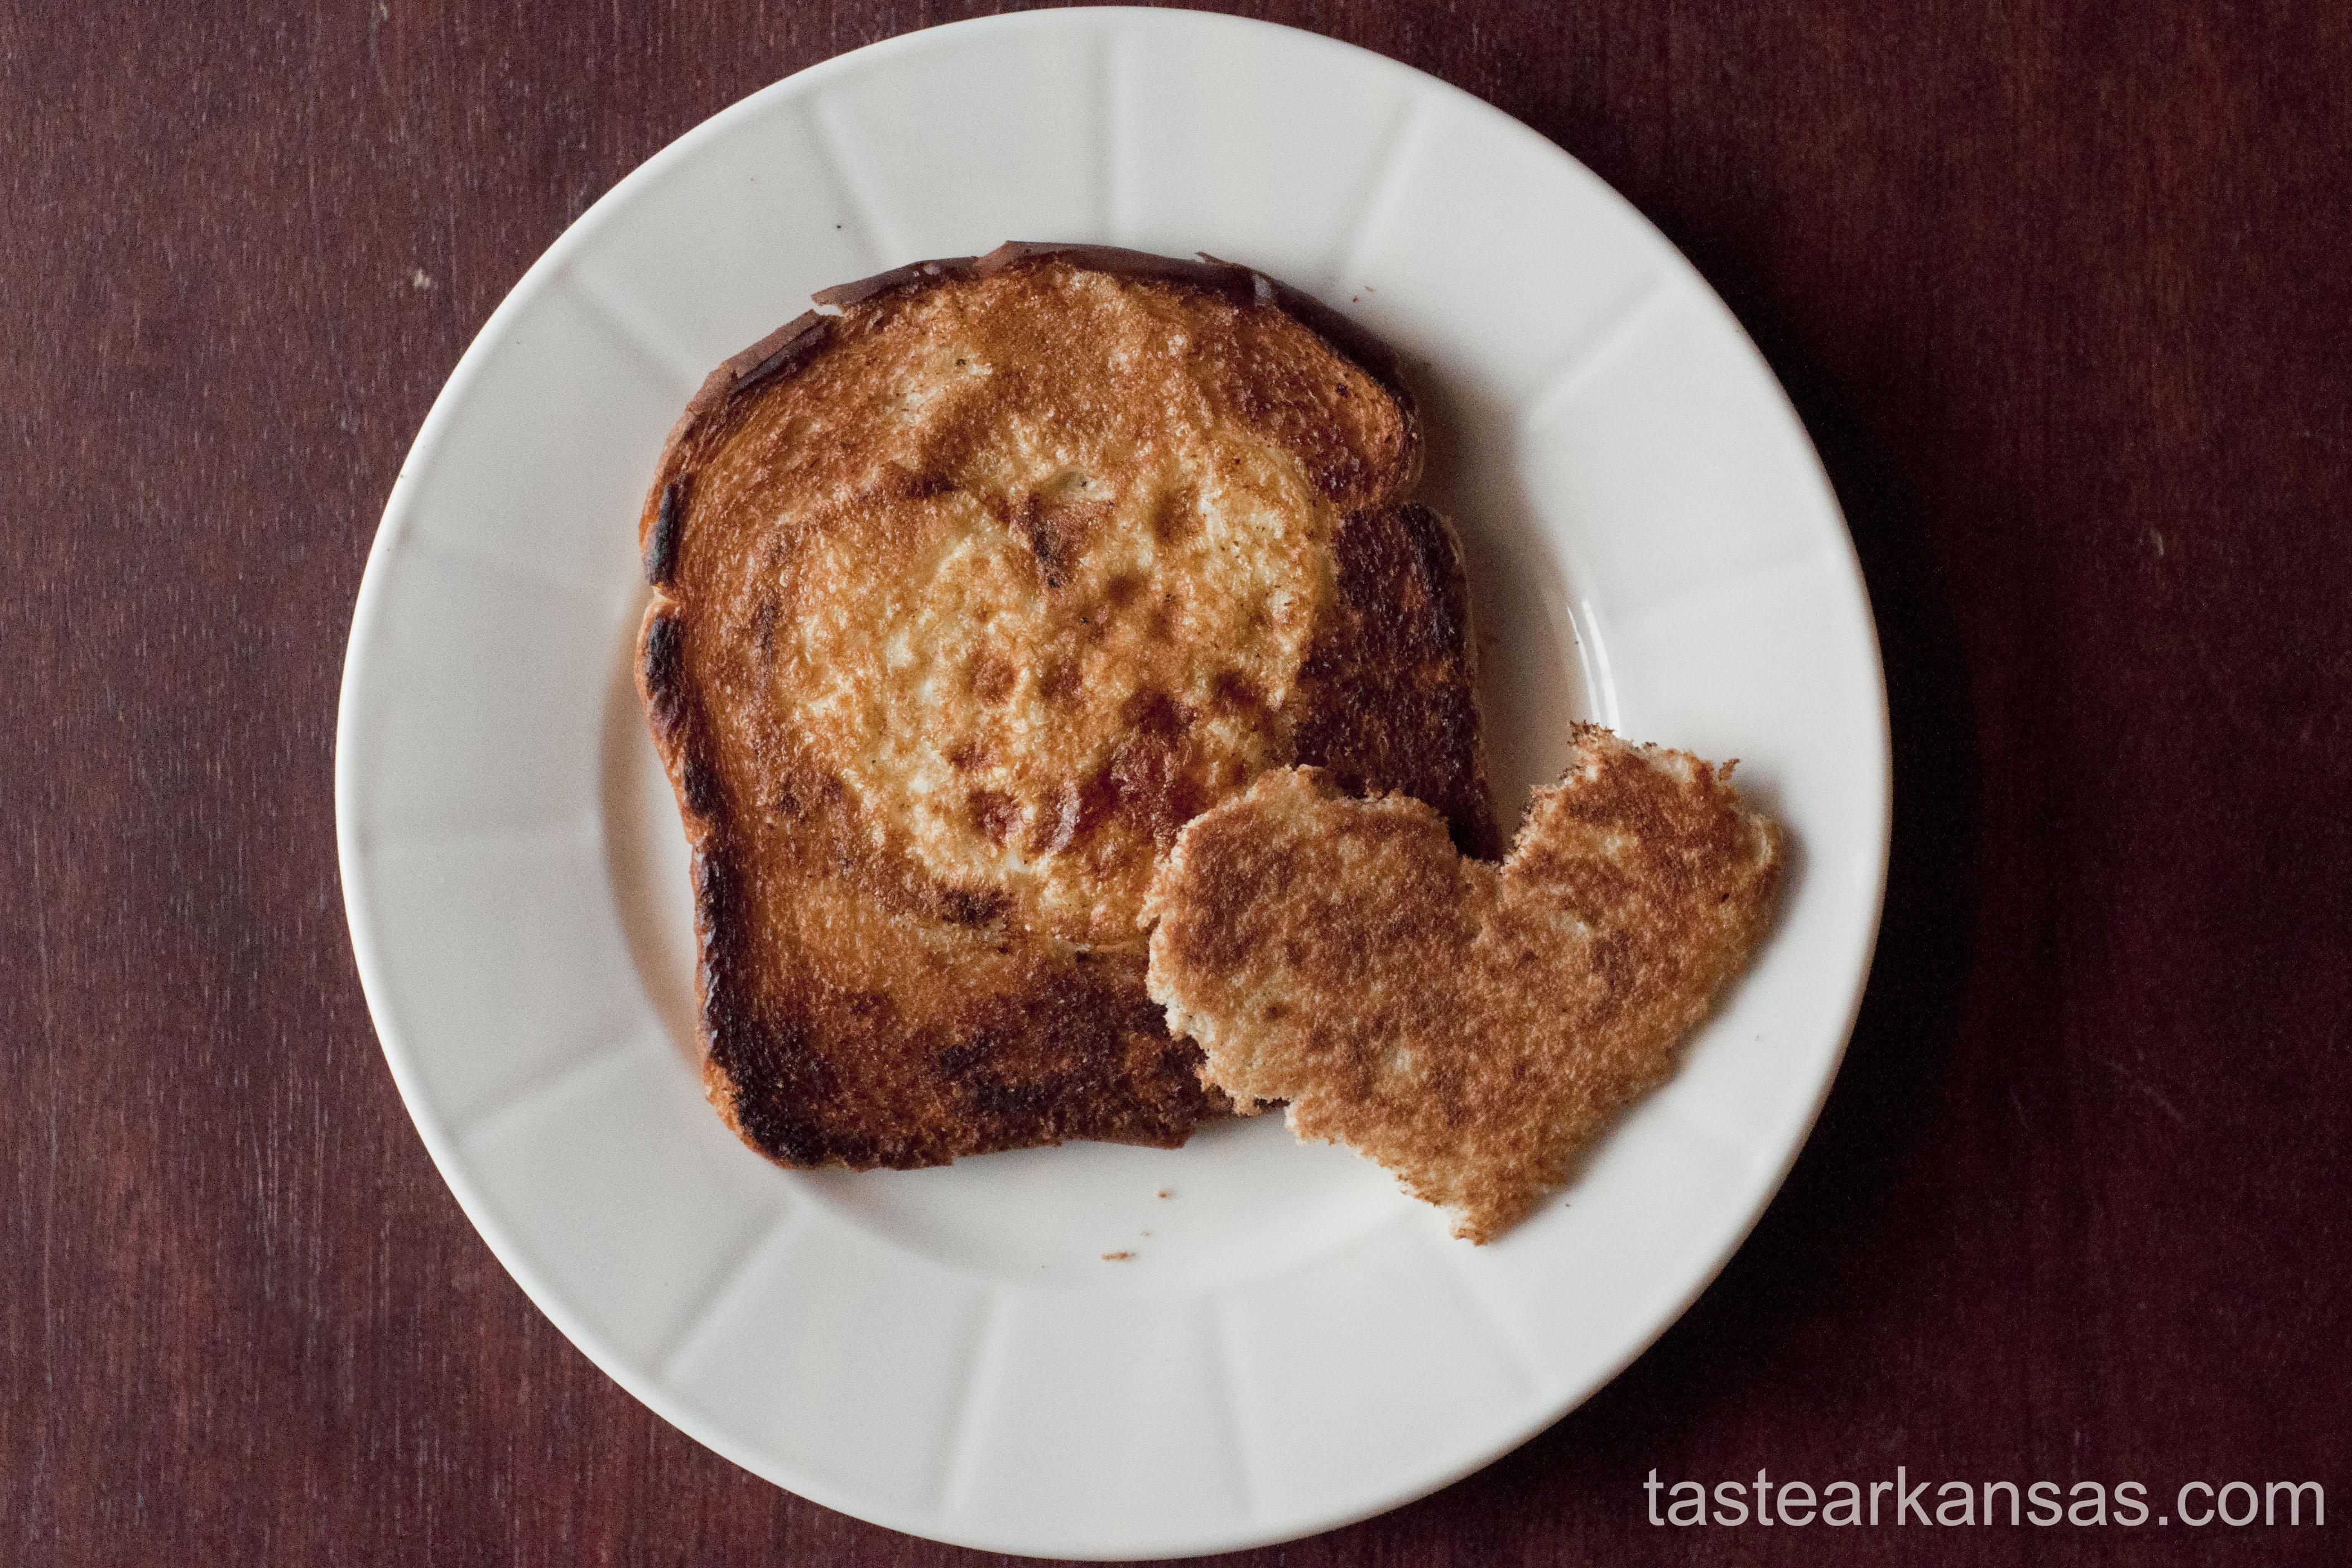 this photo is of a traditional egg in a hole with a valentine's day twist